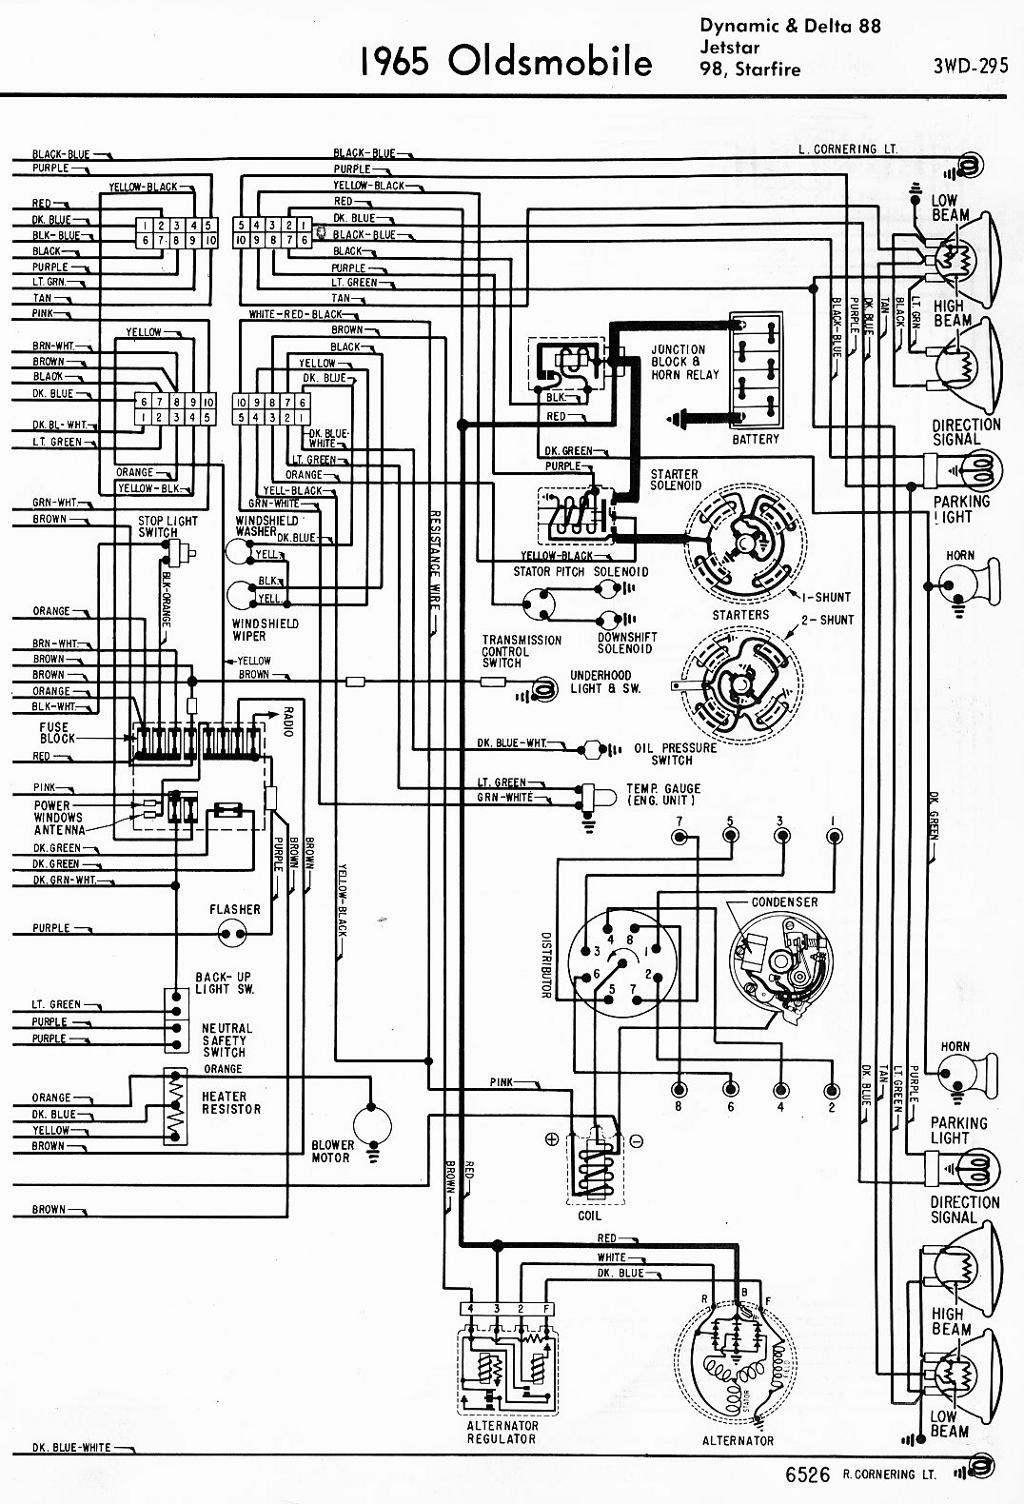 1950 Oldsmobile Wiring Diagrams Trusted 1950s Light Switch Diagram Lights Free Vehicle U2022 Gem